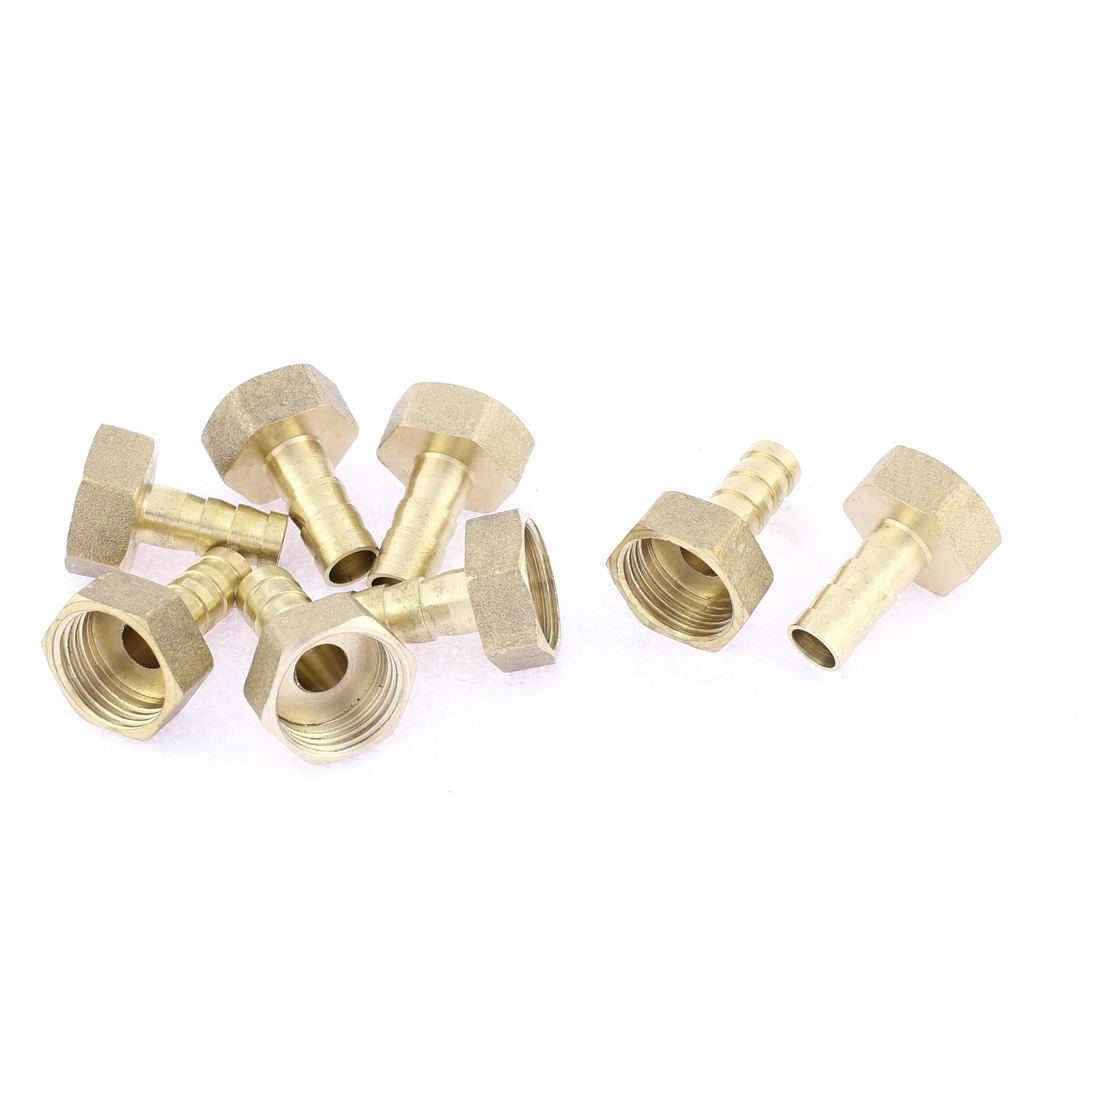 Brass 10mm Hose Barb 1/2BSP Female Thread Quick Joint Connector Adapter 8pcs